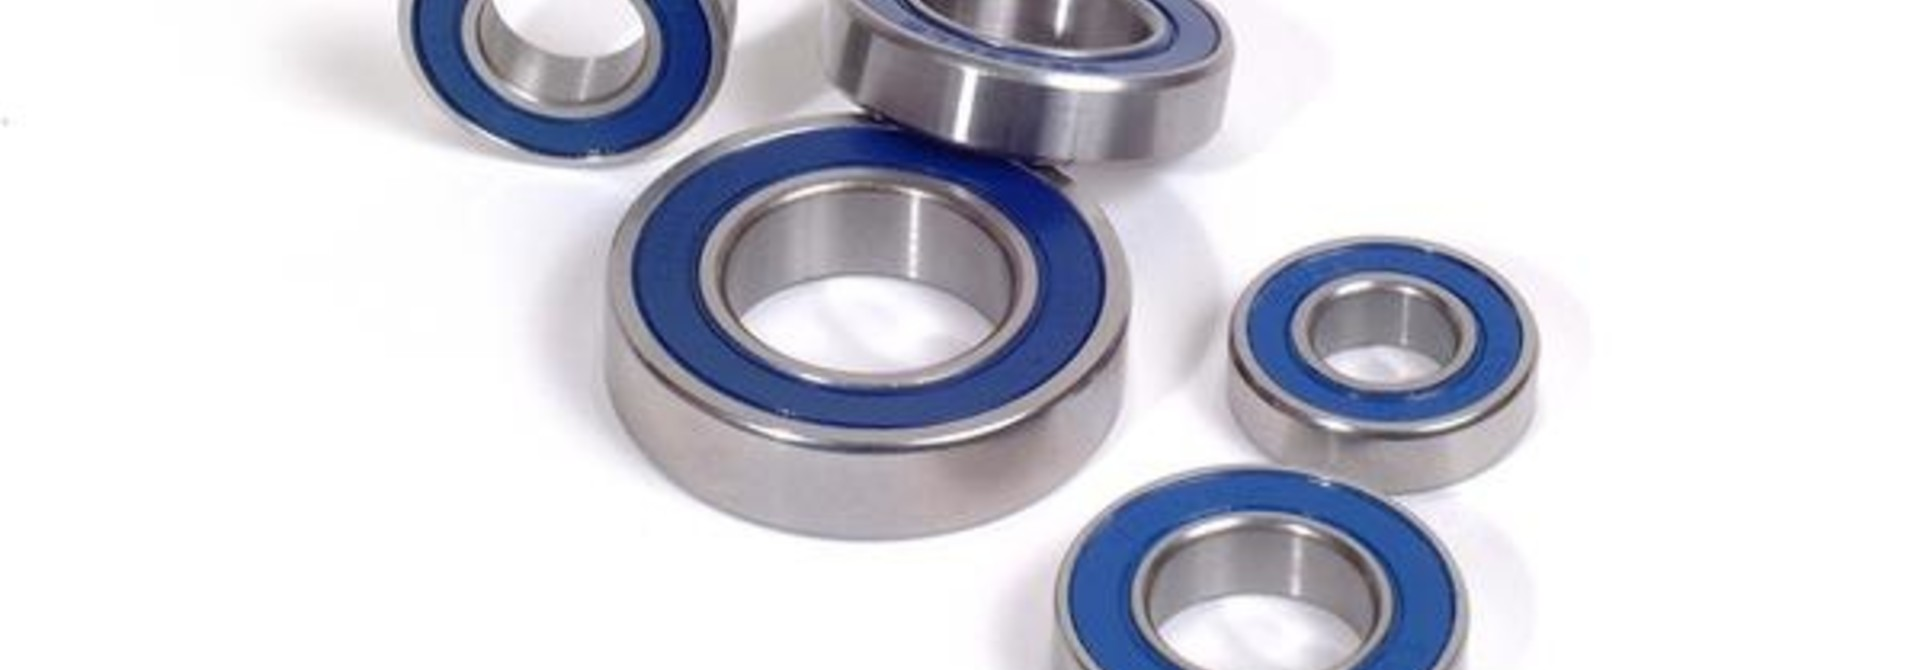 Enduro 6901 ABEC-3 Steel Bearing /each (12x24x6mm)